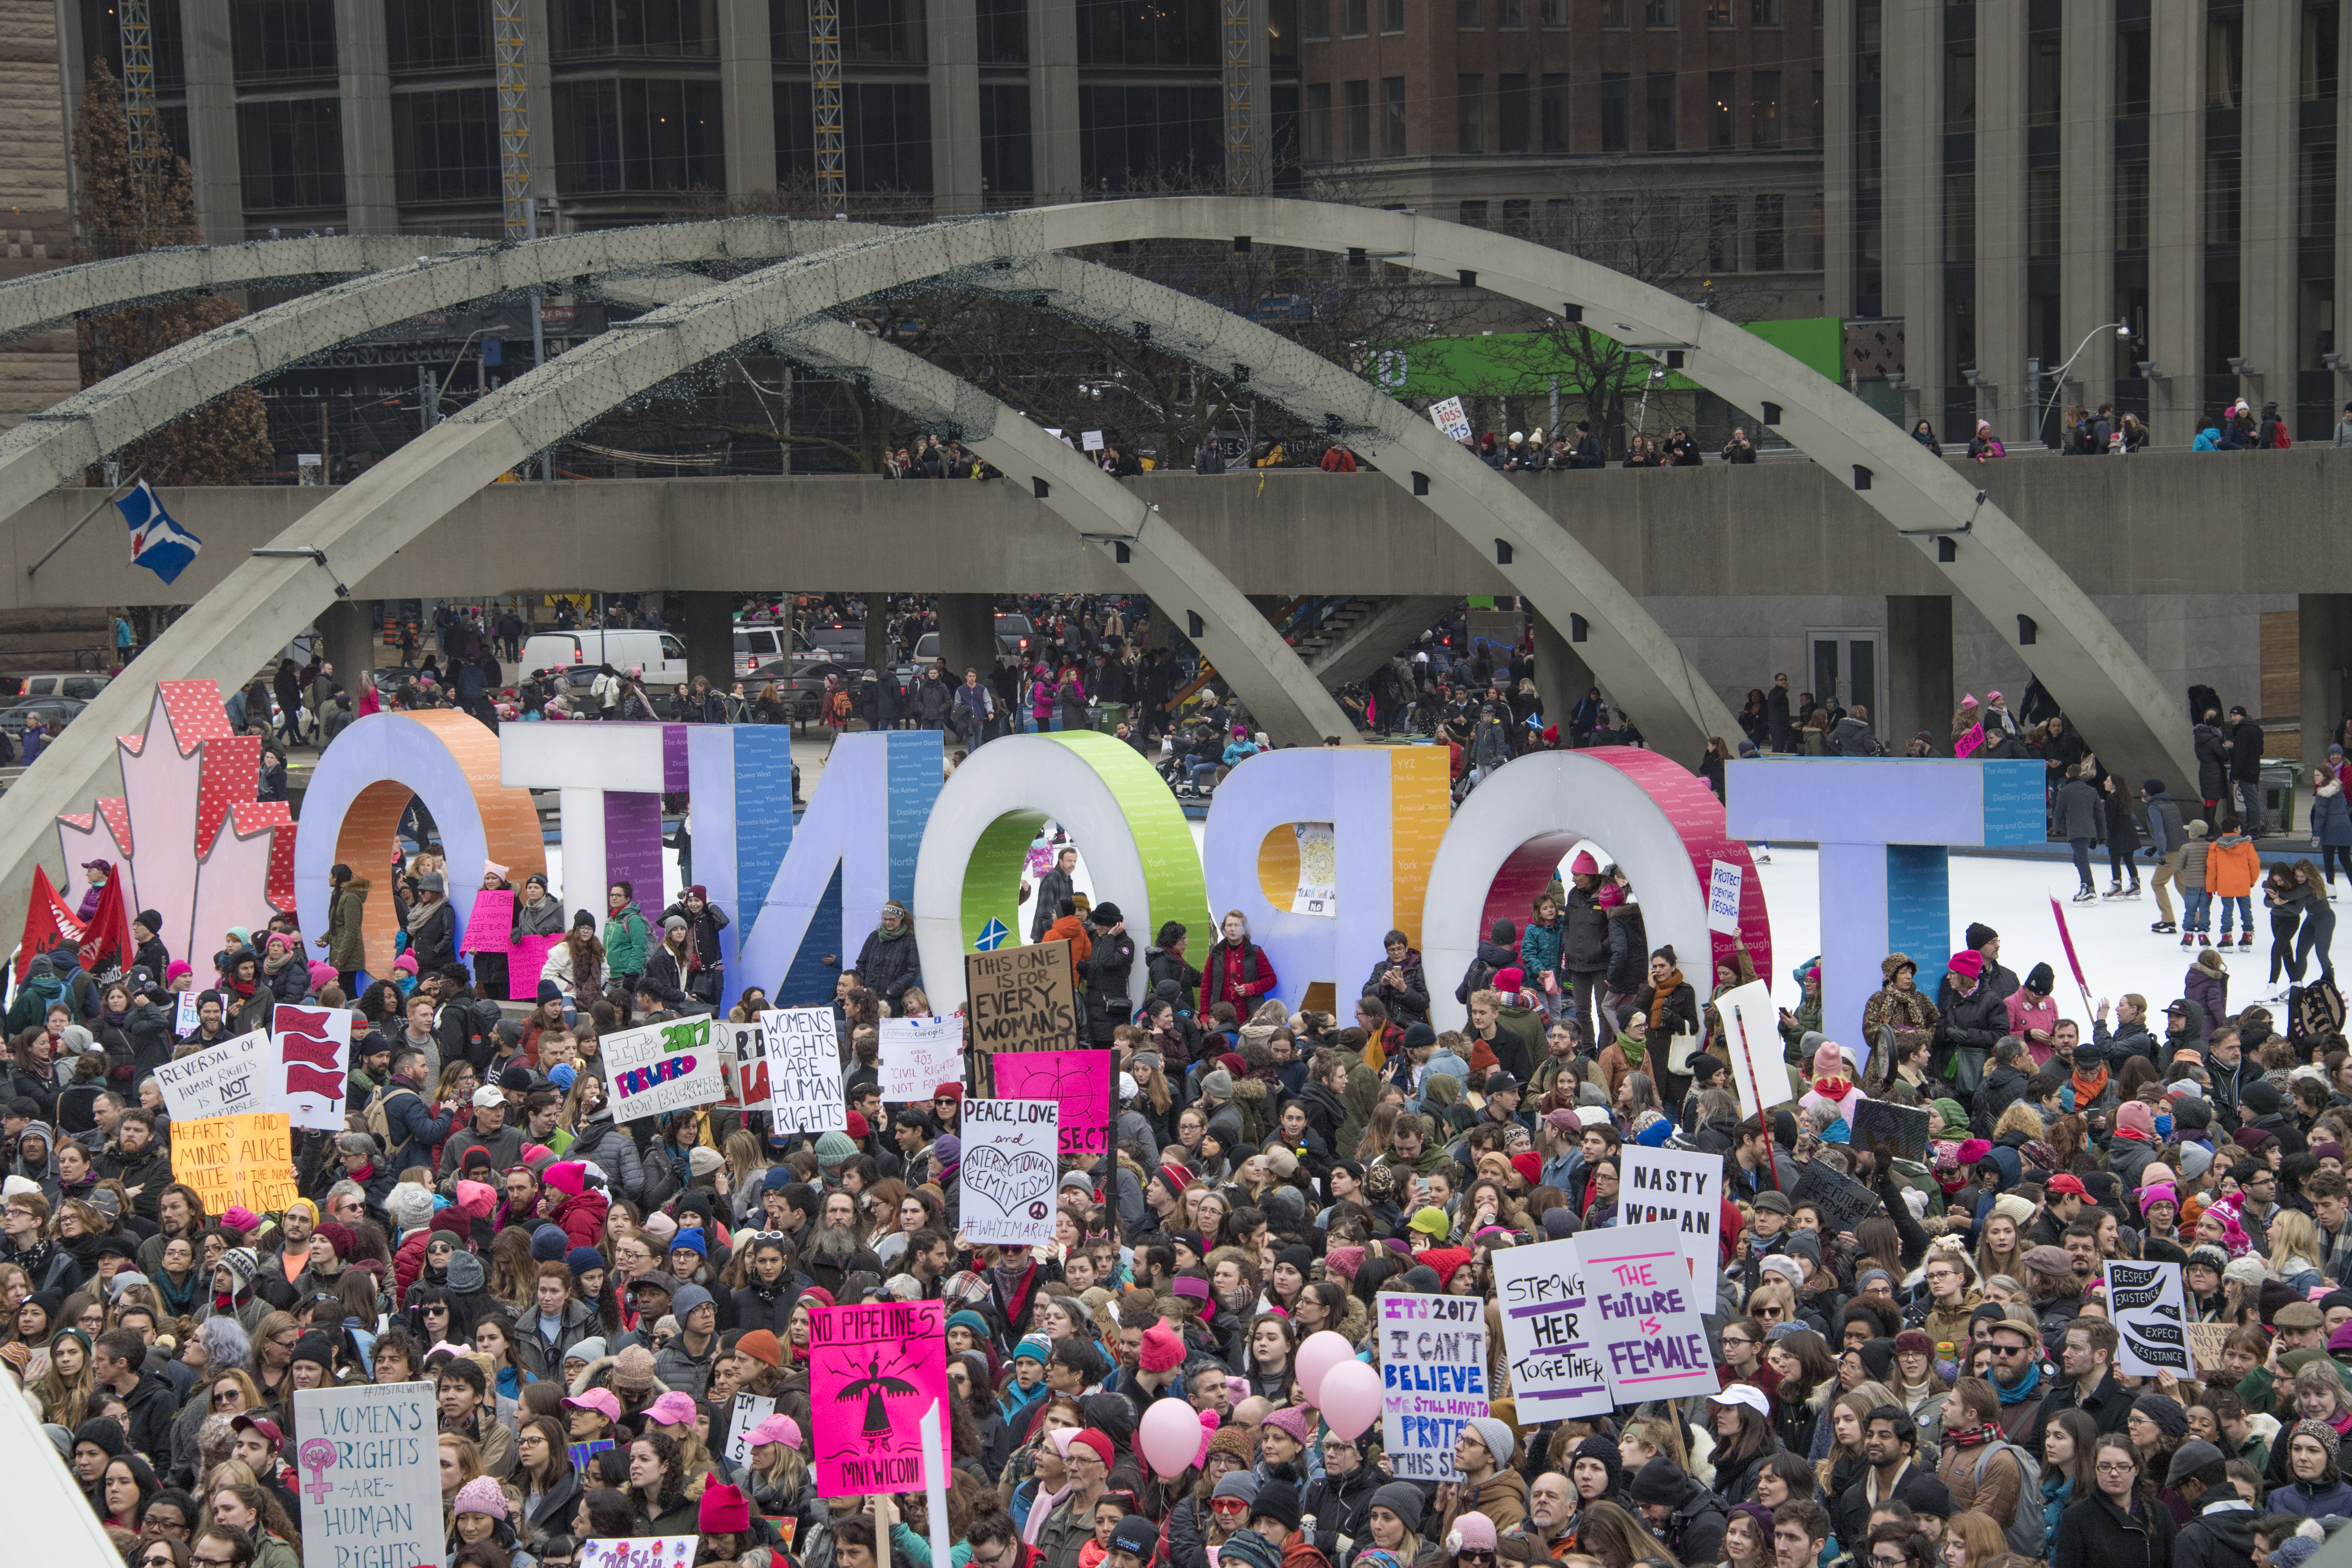 Women and their allies marched in support of the Women's